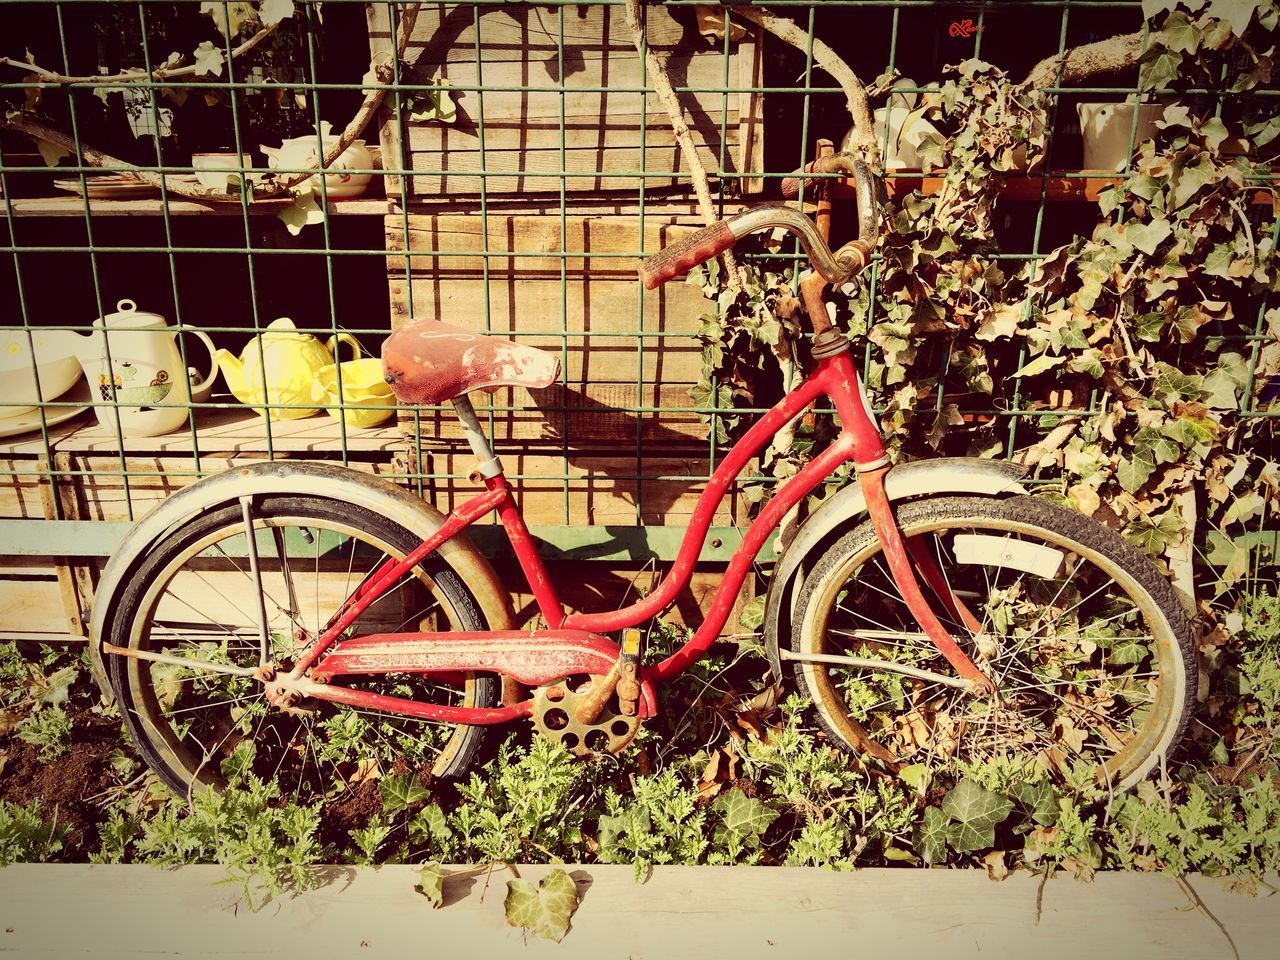 bicycle, transportation, mode of transport, no people, stationary, outdoors, day, land vehicle, abandoned, bicycle rack